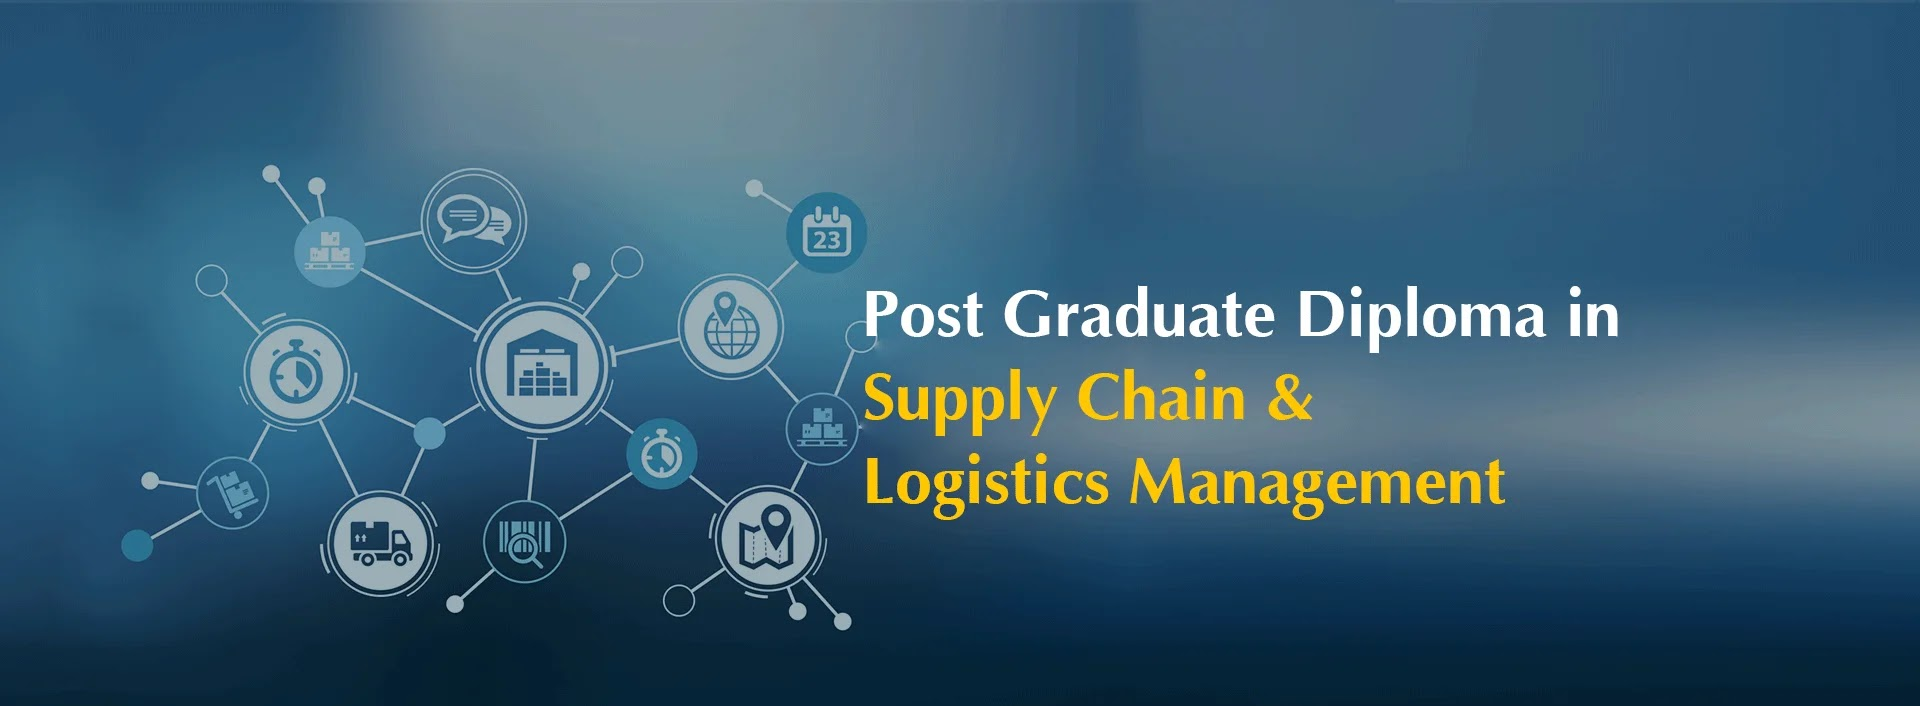 Post Graduate Diploma in Supply Chain and Logistics Management Online